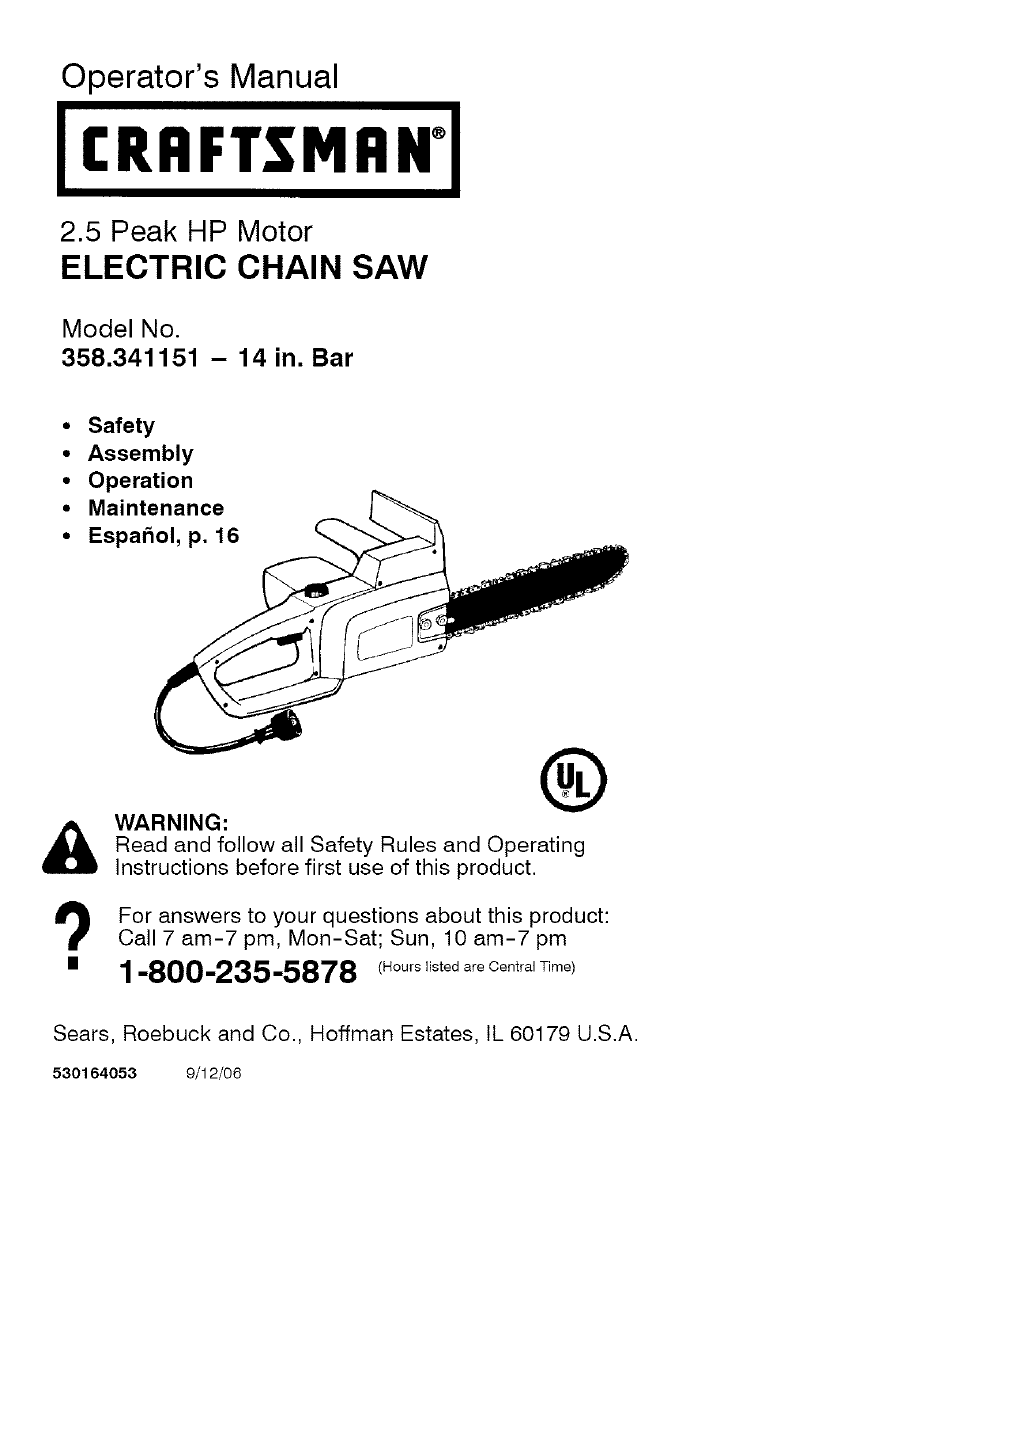 Craftsman 358341151 user manual chain saw manuals and guides l0609398 greentooth Images